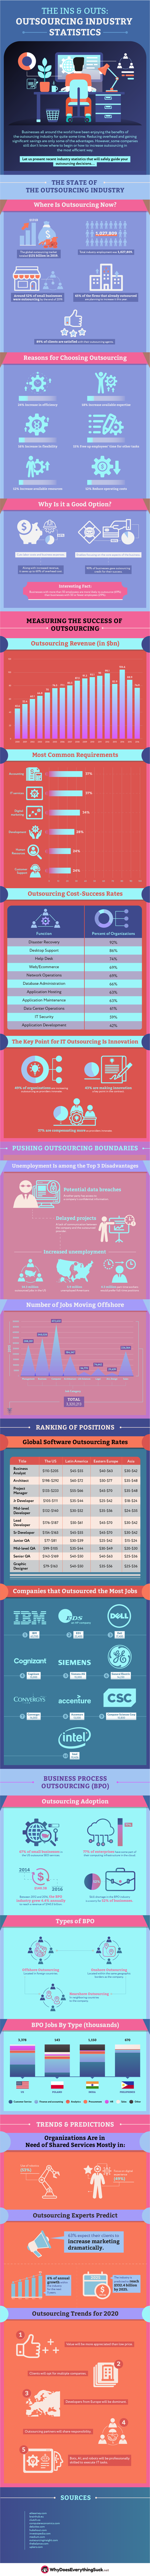 Outsourcing Statistics Infographic